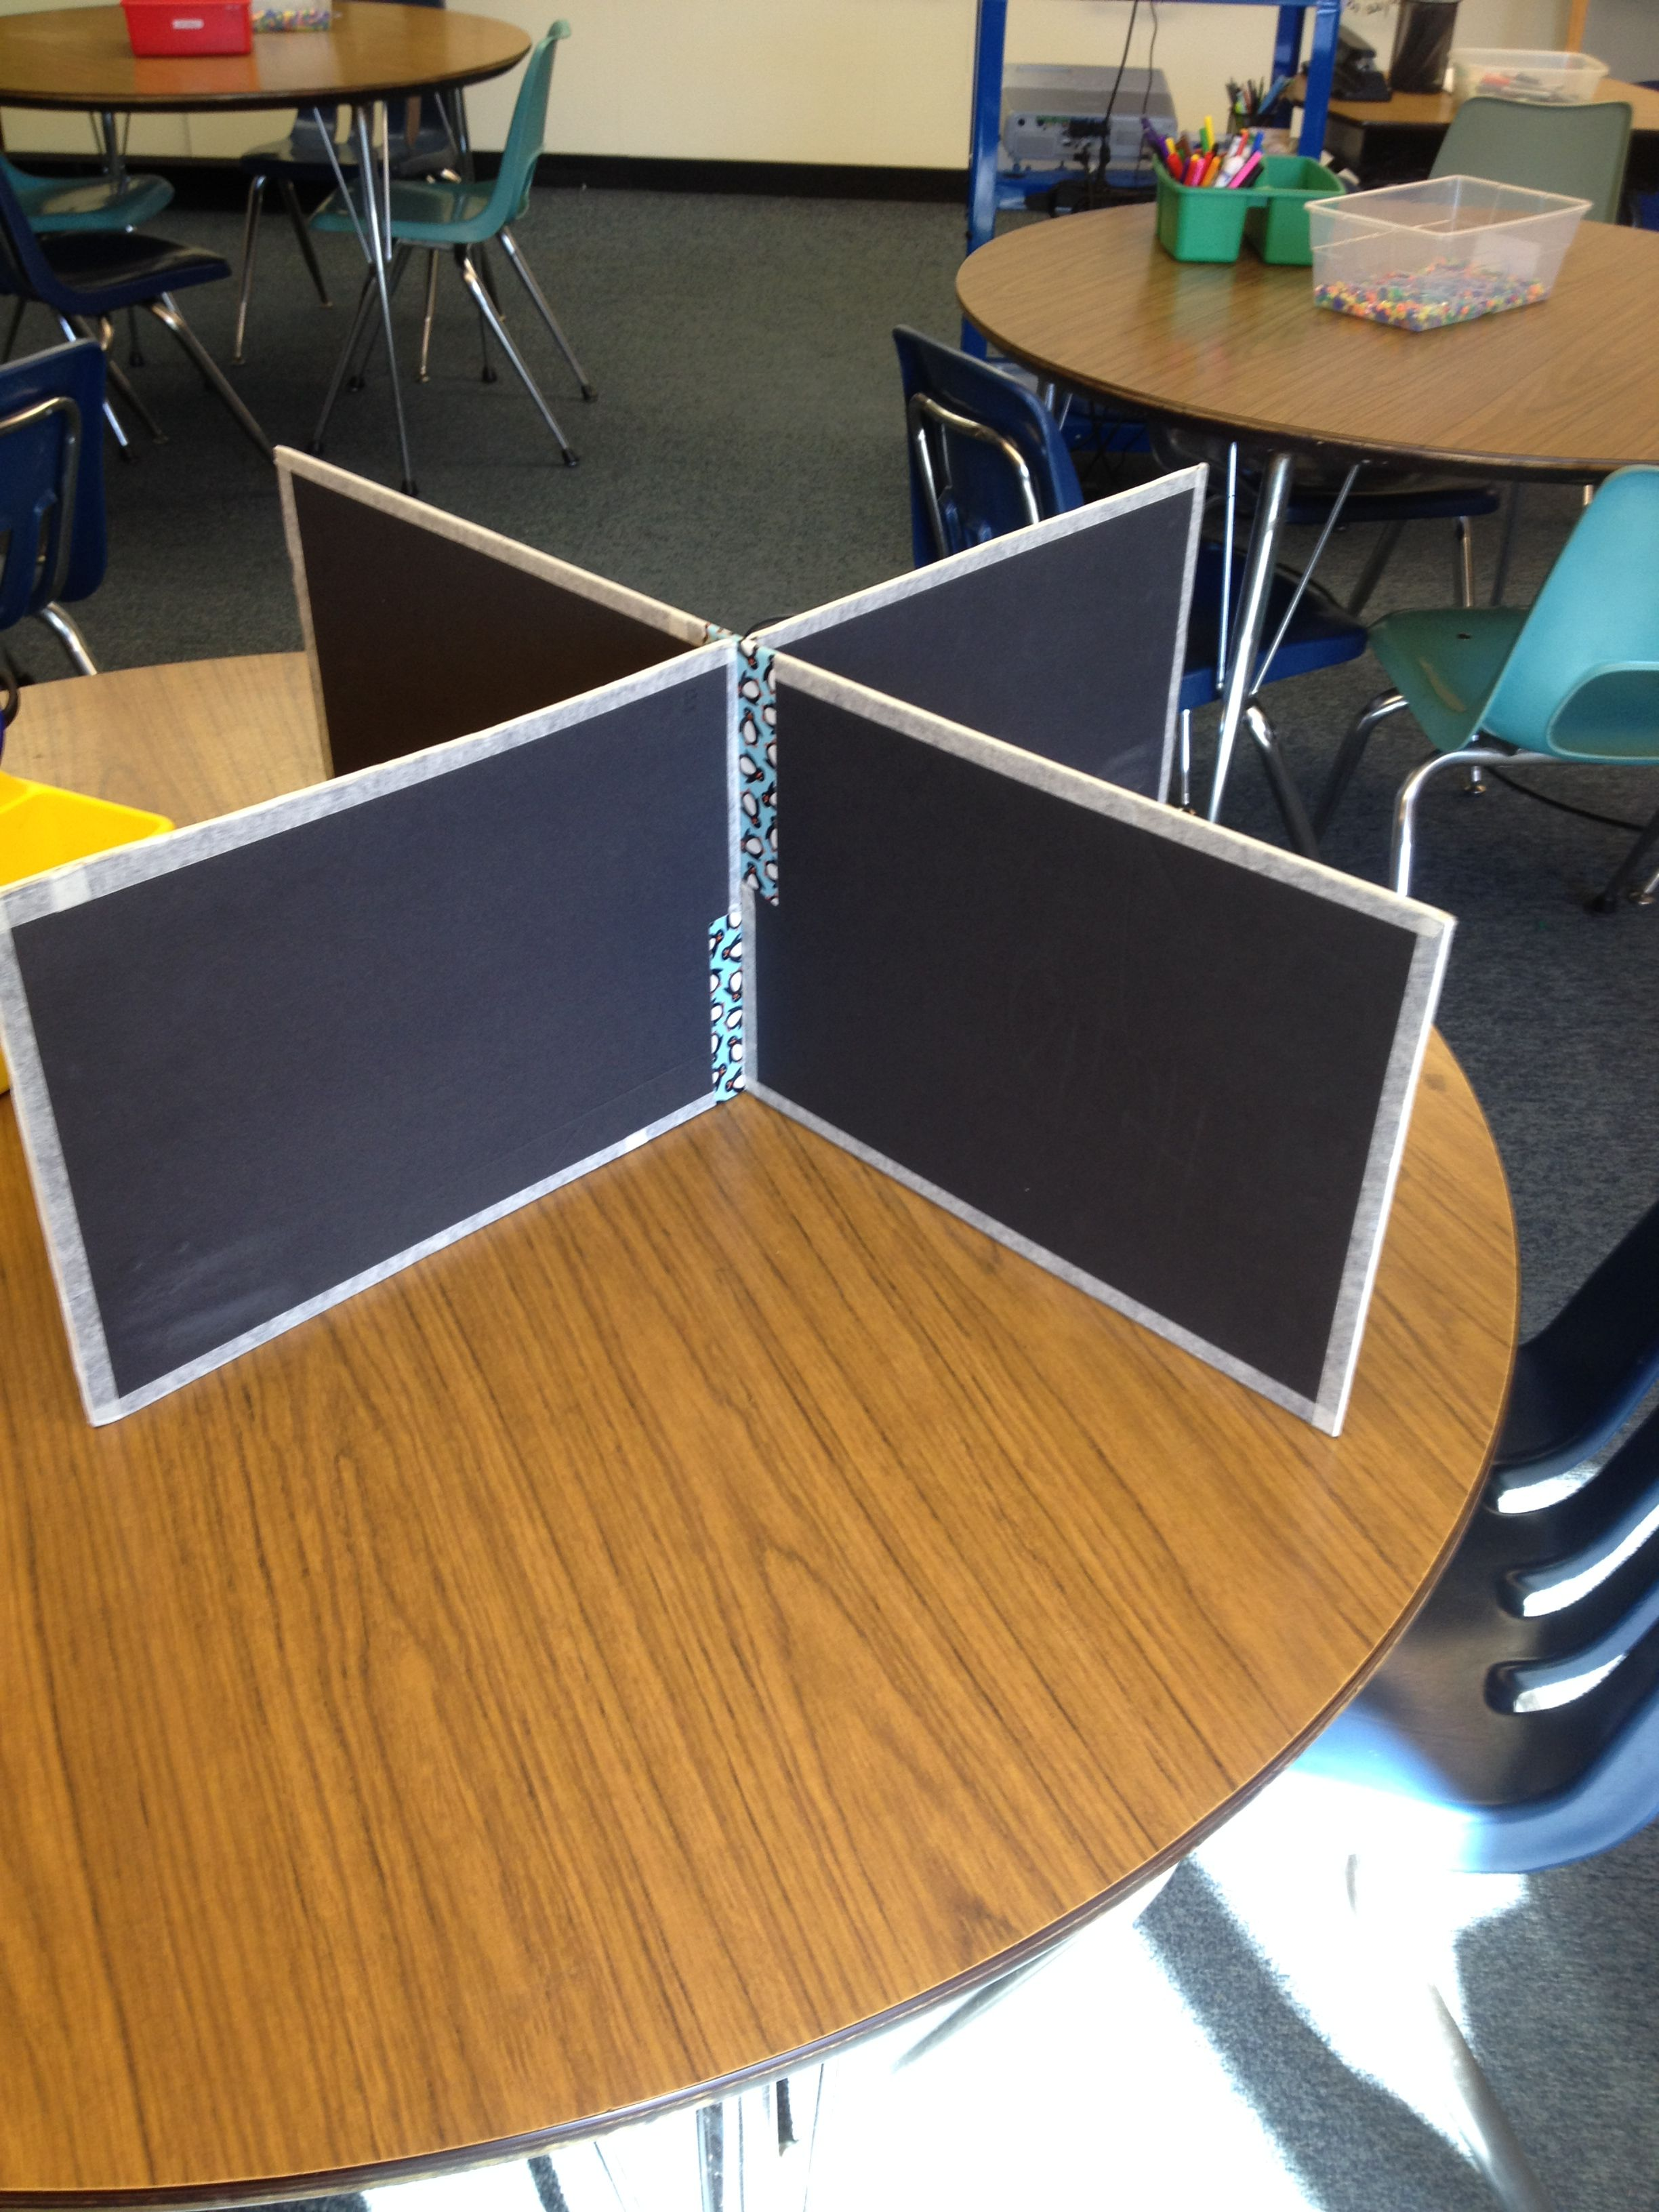 Classroom Table Dividers Made From Dollar Store Materials Works Great For Testing Classroom Tables Classroom Arrangement Diy Classroom